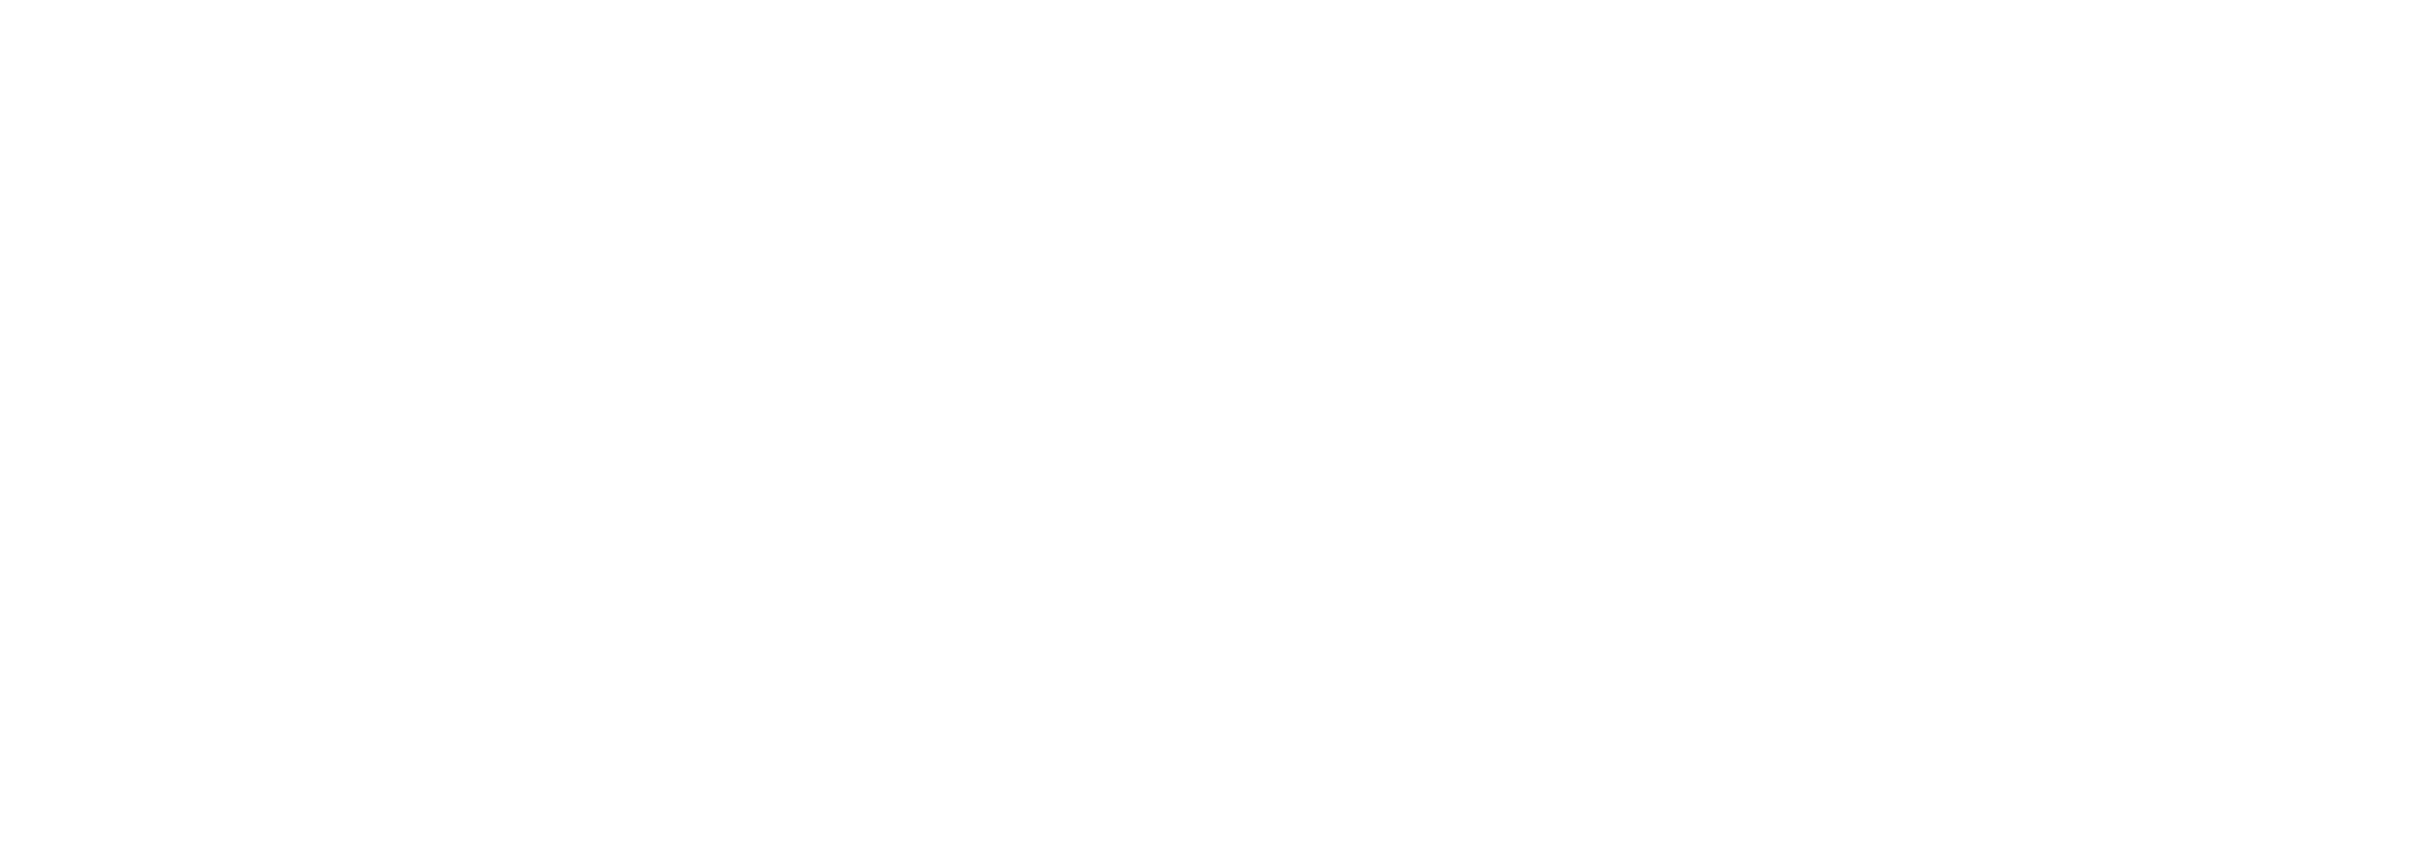 Jeunes musiciens du monde